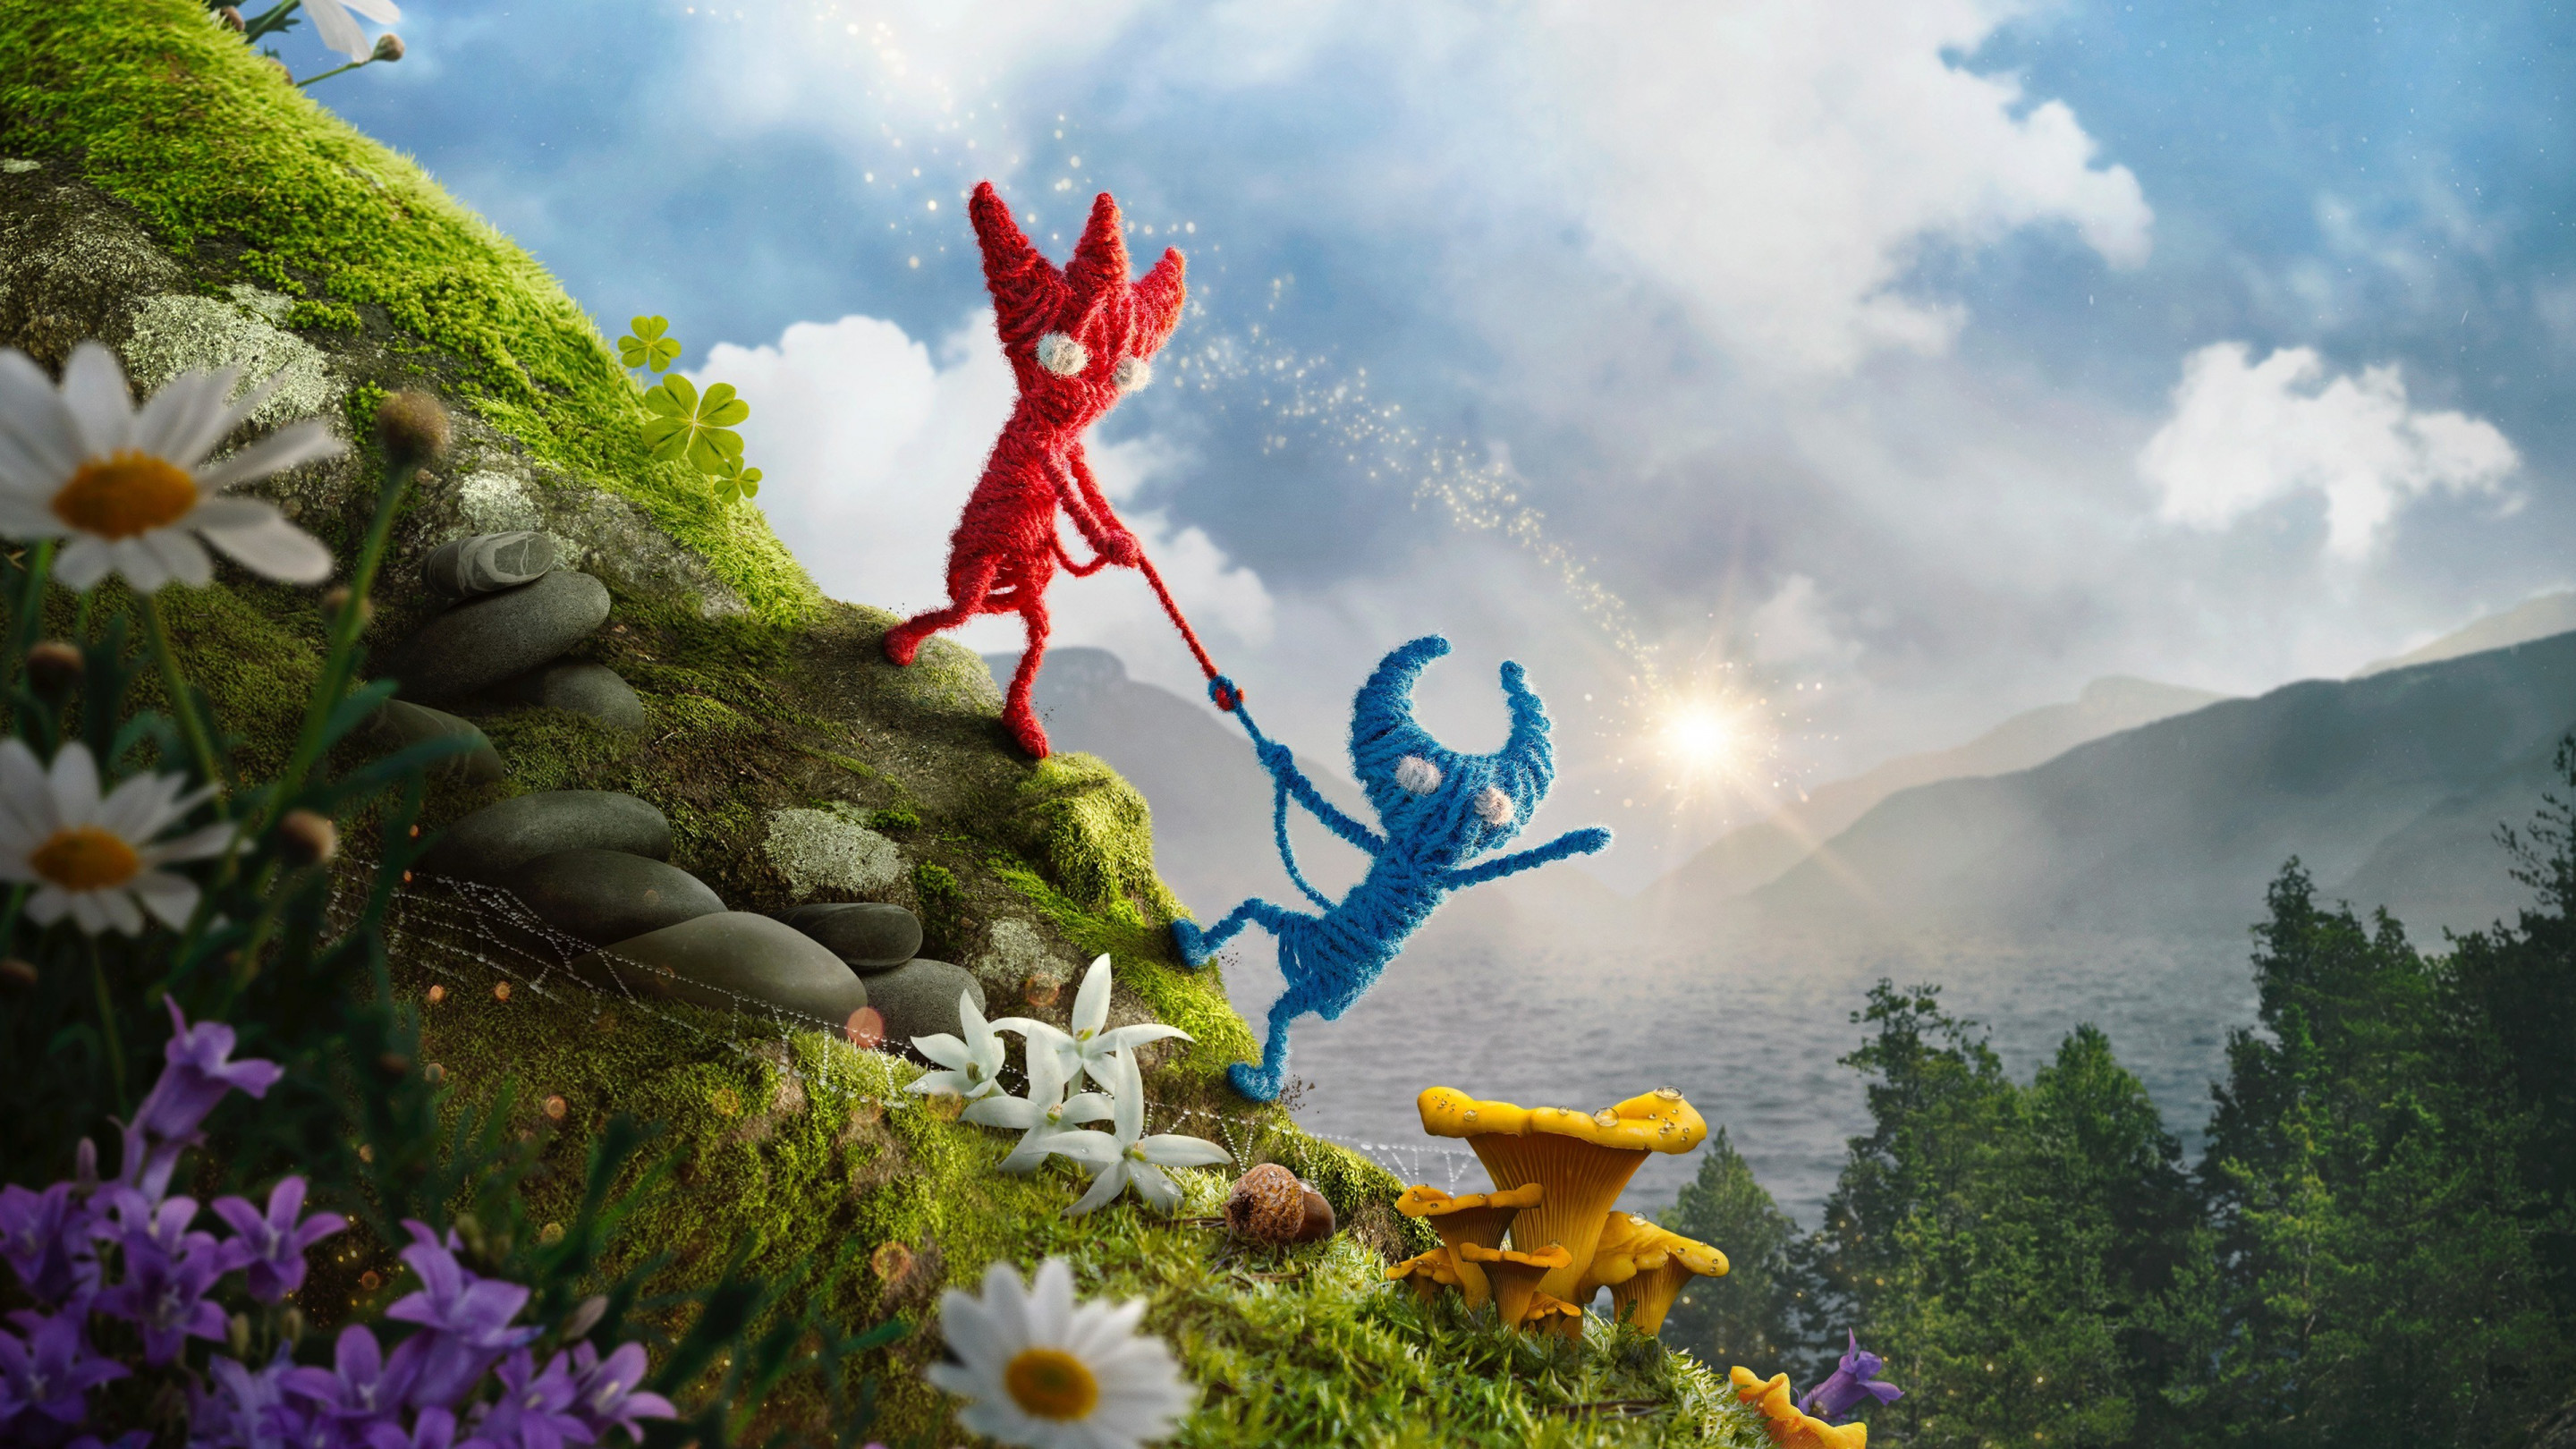 Unravel 2 wallpaper 2880x1620